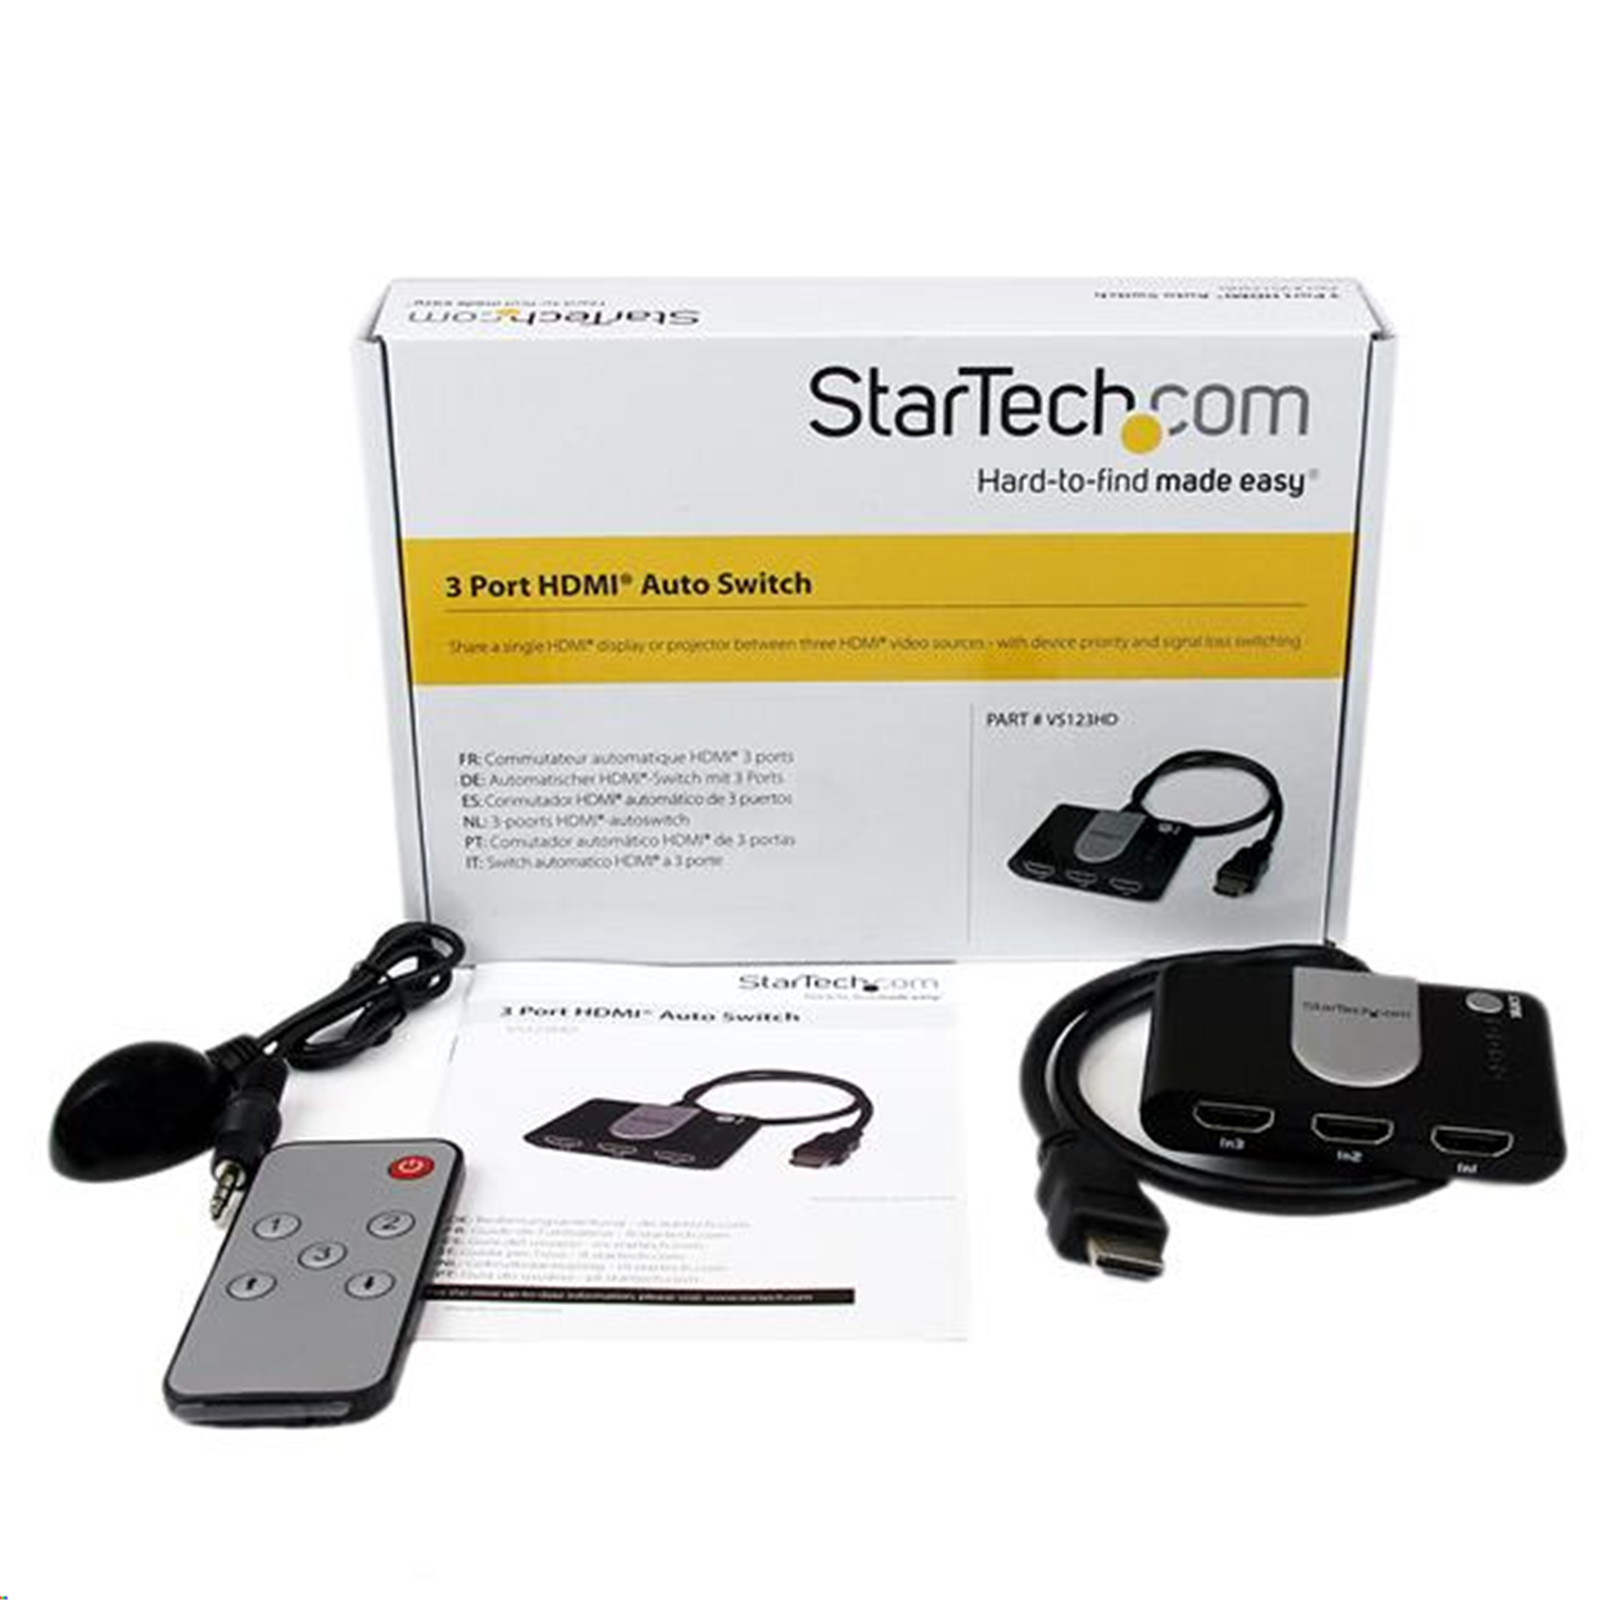 Buy The Startech Vs123hd 3 Port Hdmi Auto Switch W Ir Remote Control Extender Circuit Mark